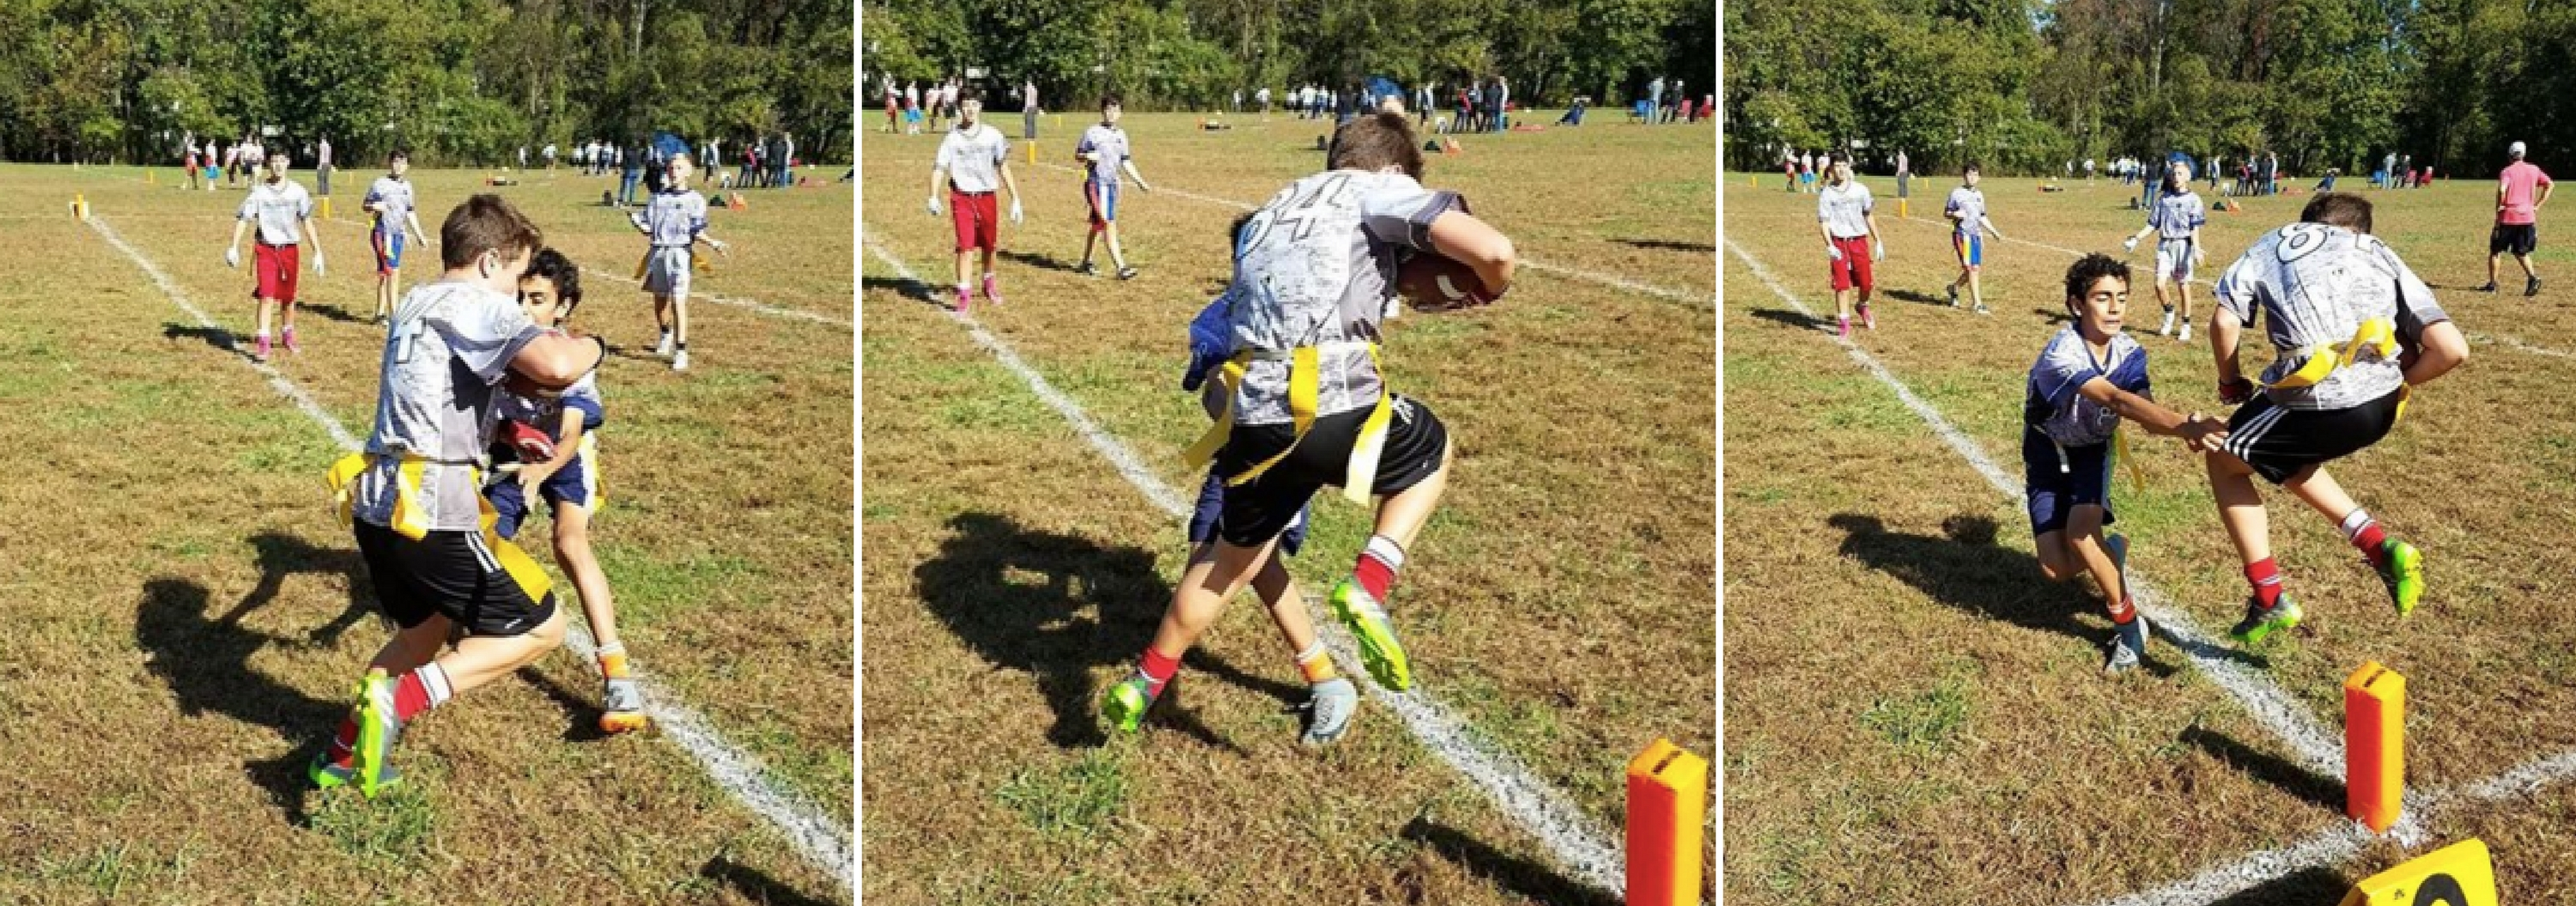 Gaithersburg flag football